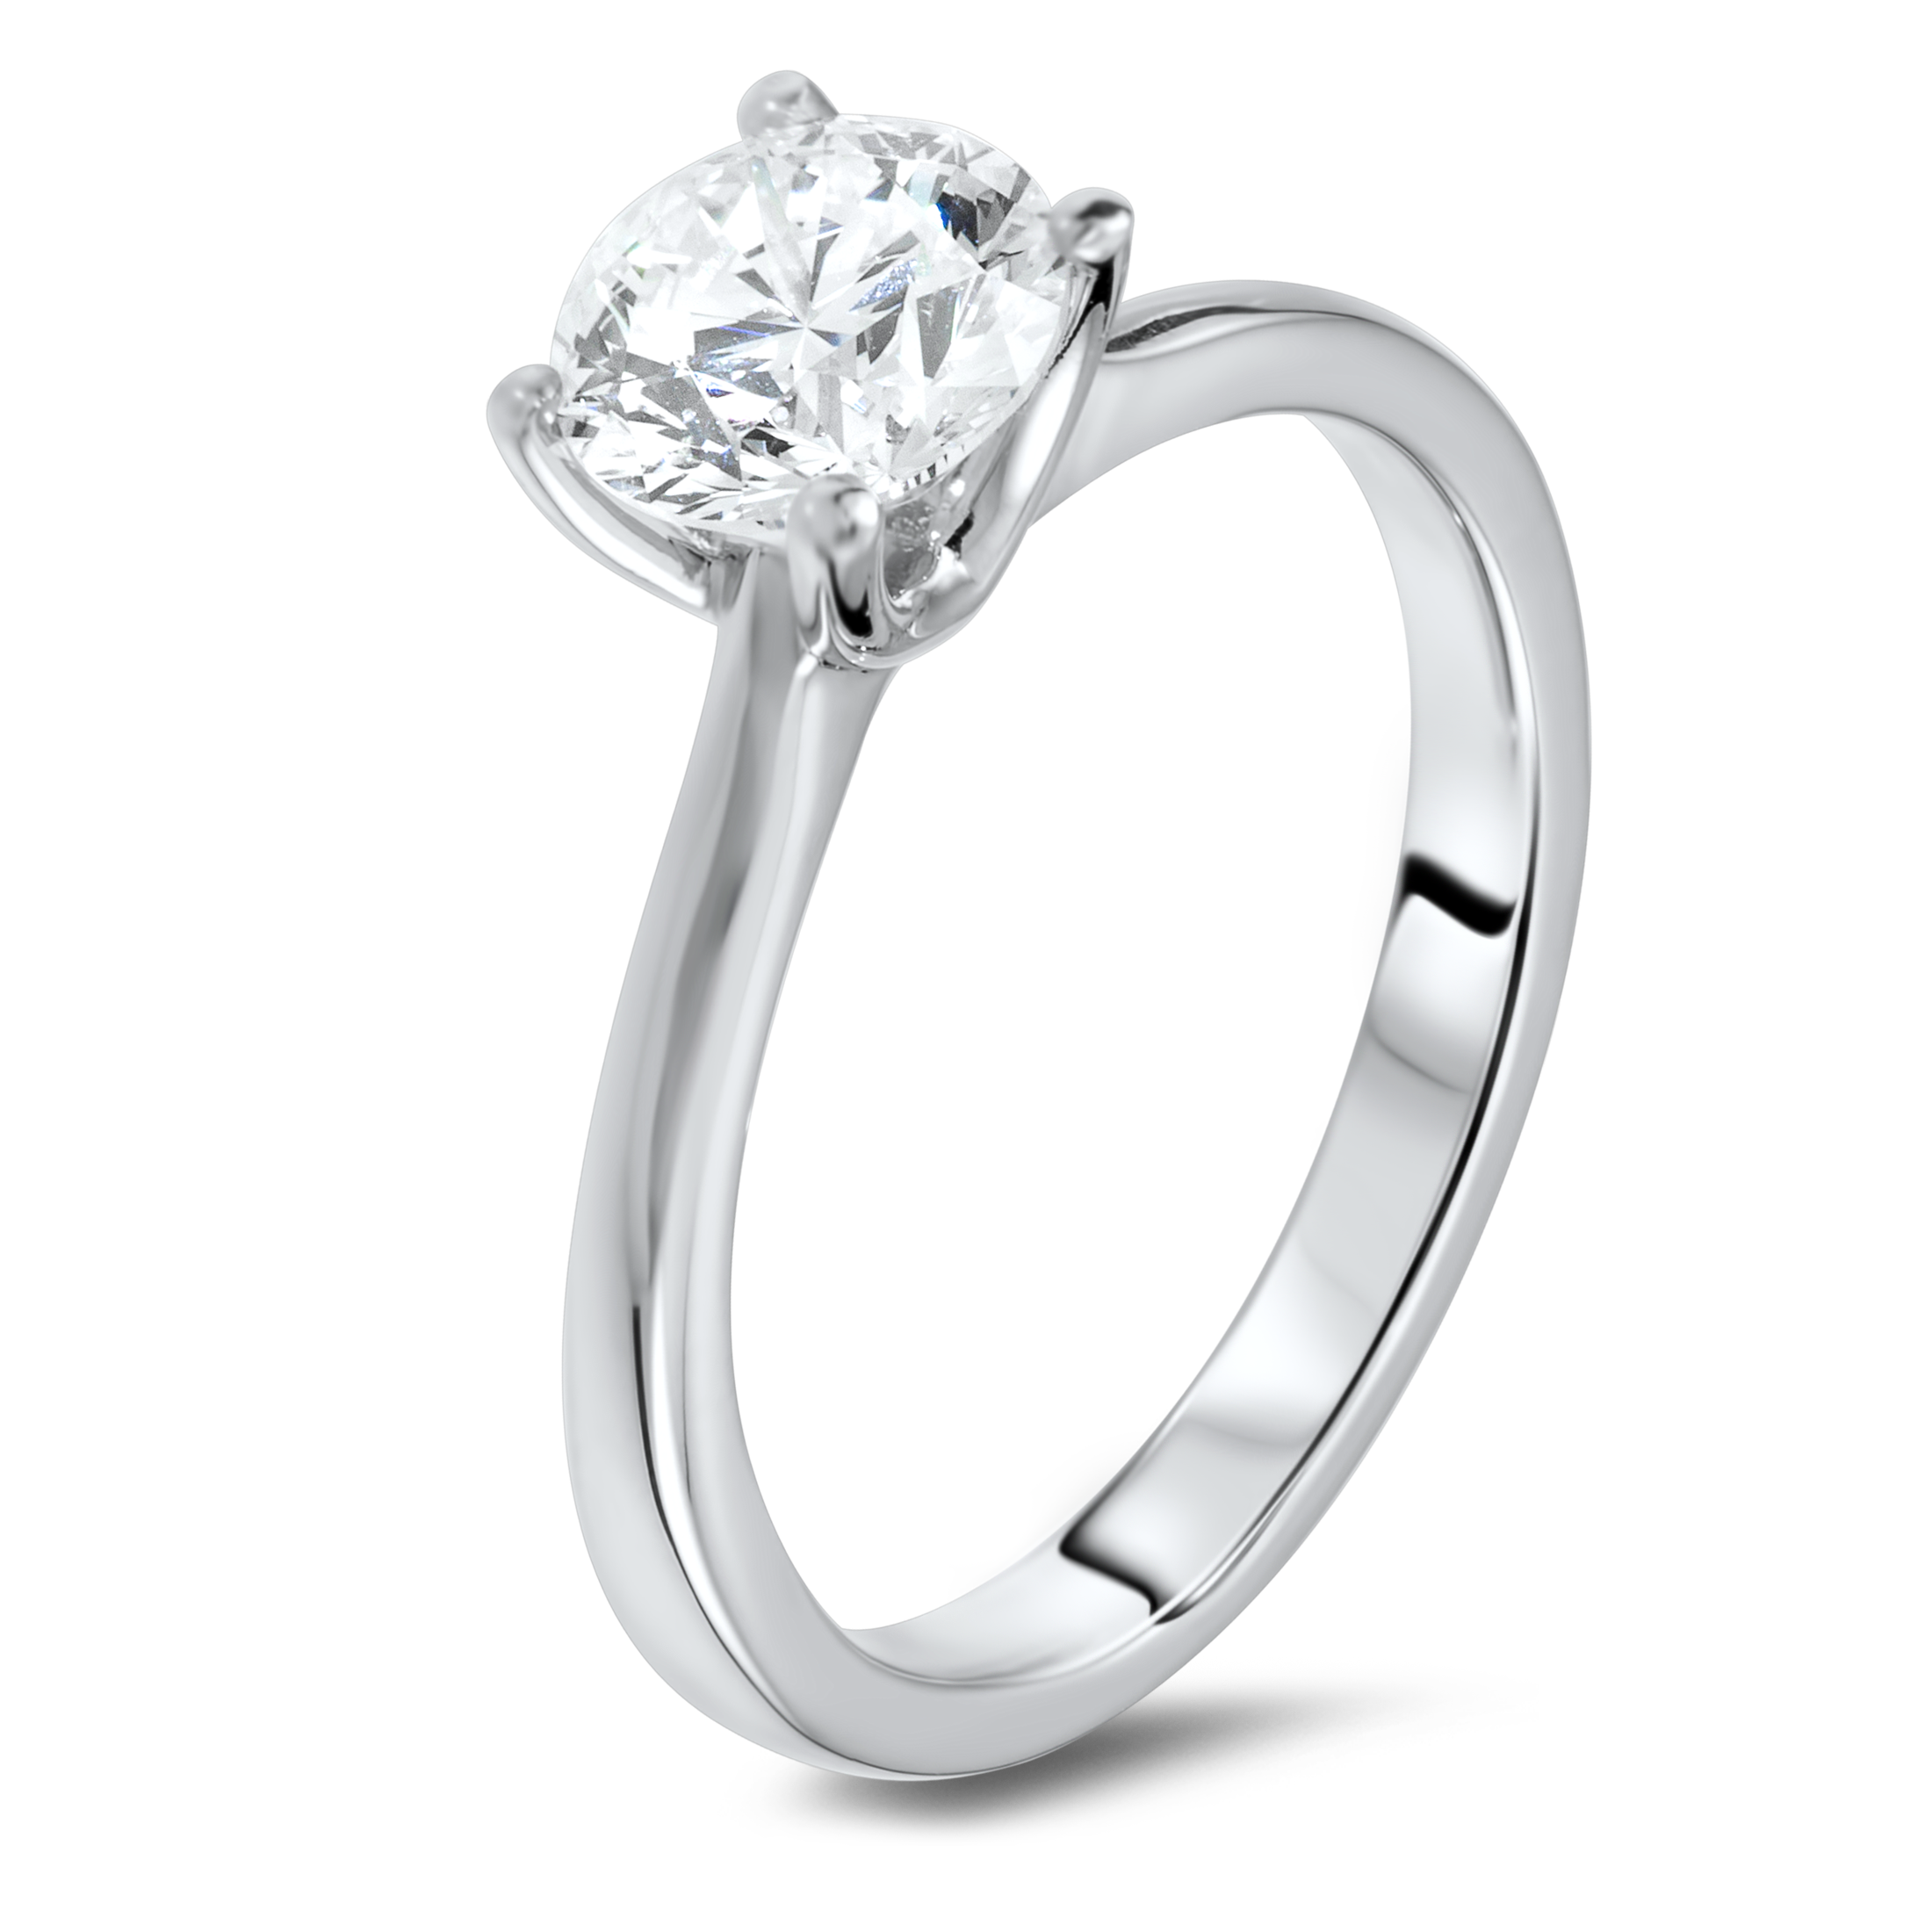 1.24 carat solitaire diamond ring.